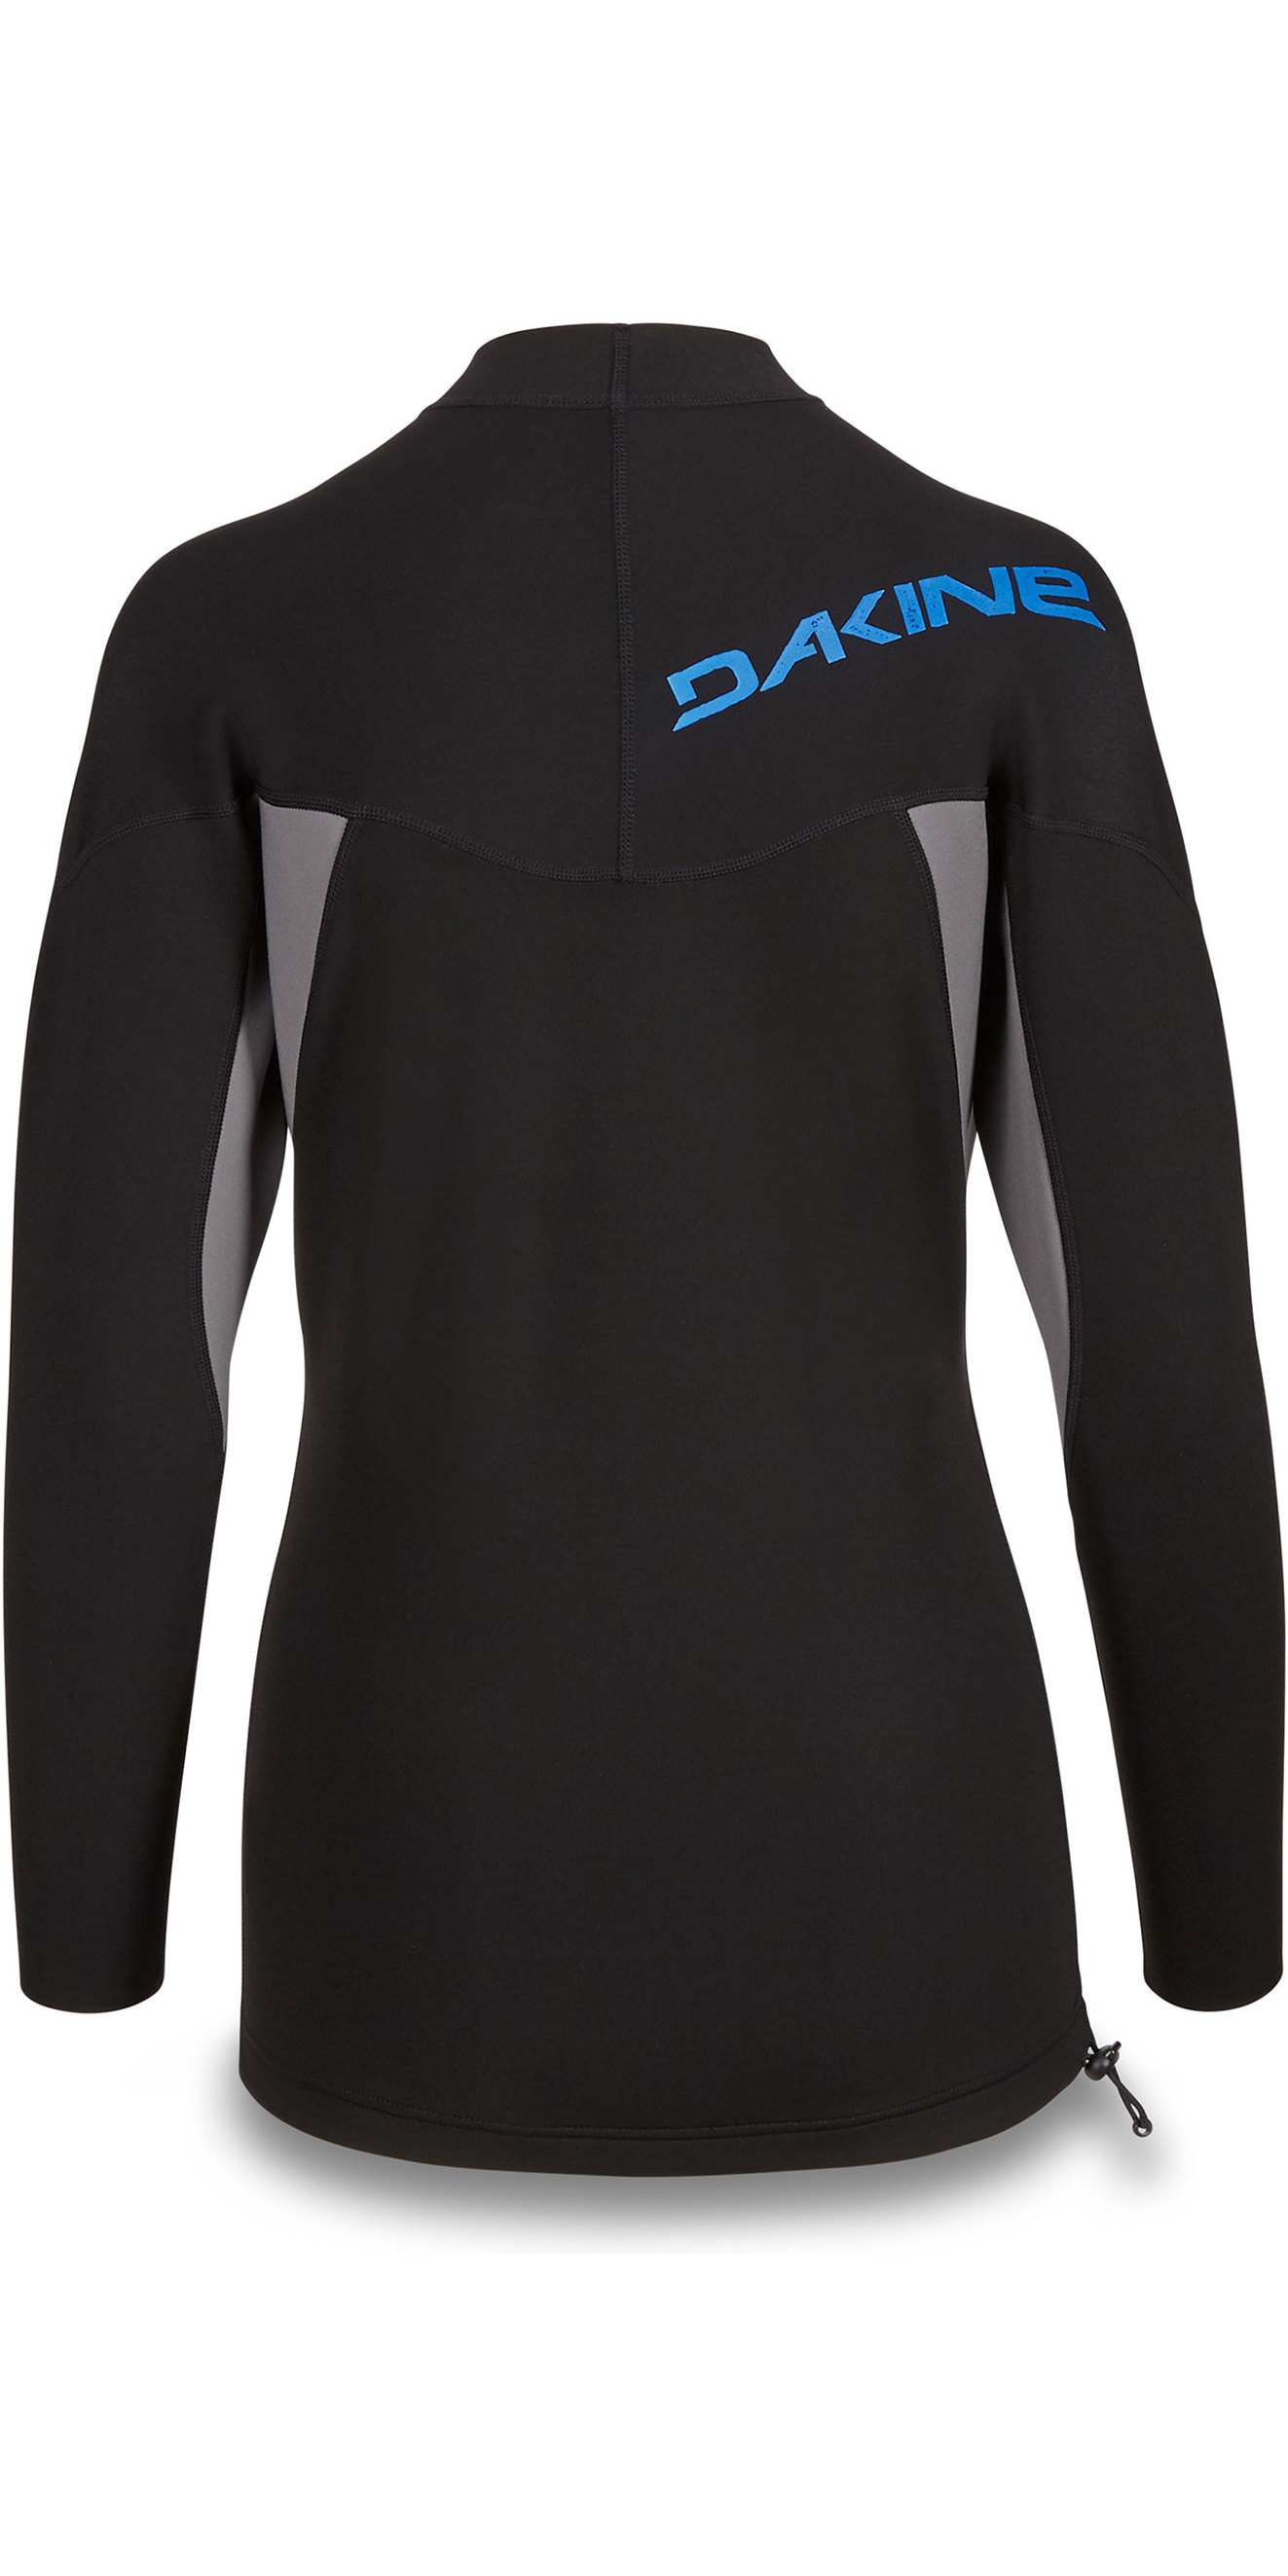 2019 Dakine Mens Long Sleeve 1mm Flatlock Neoprene Top Black 10002256